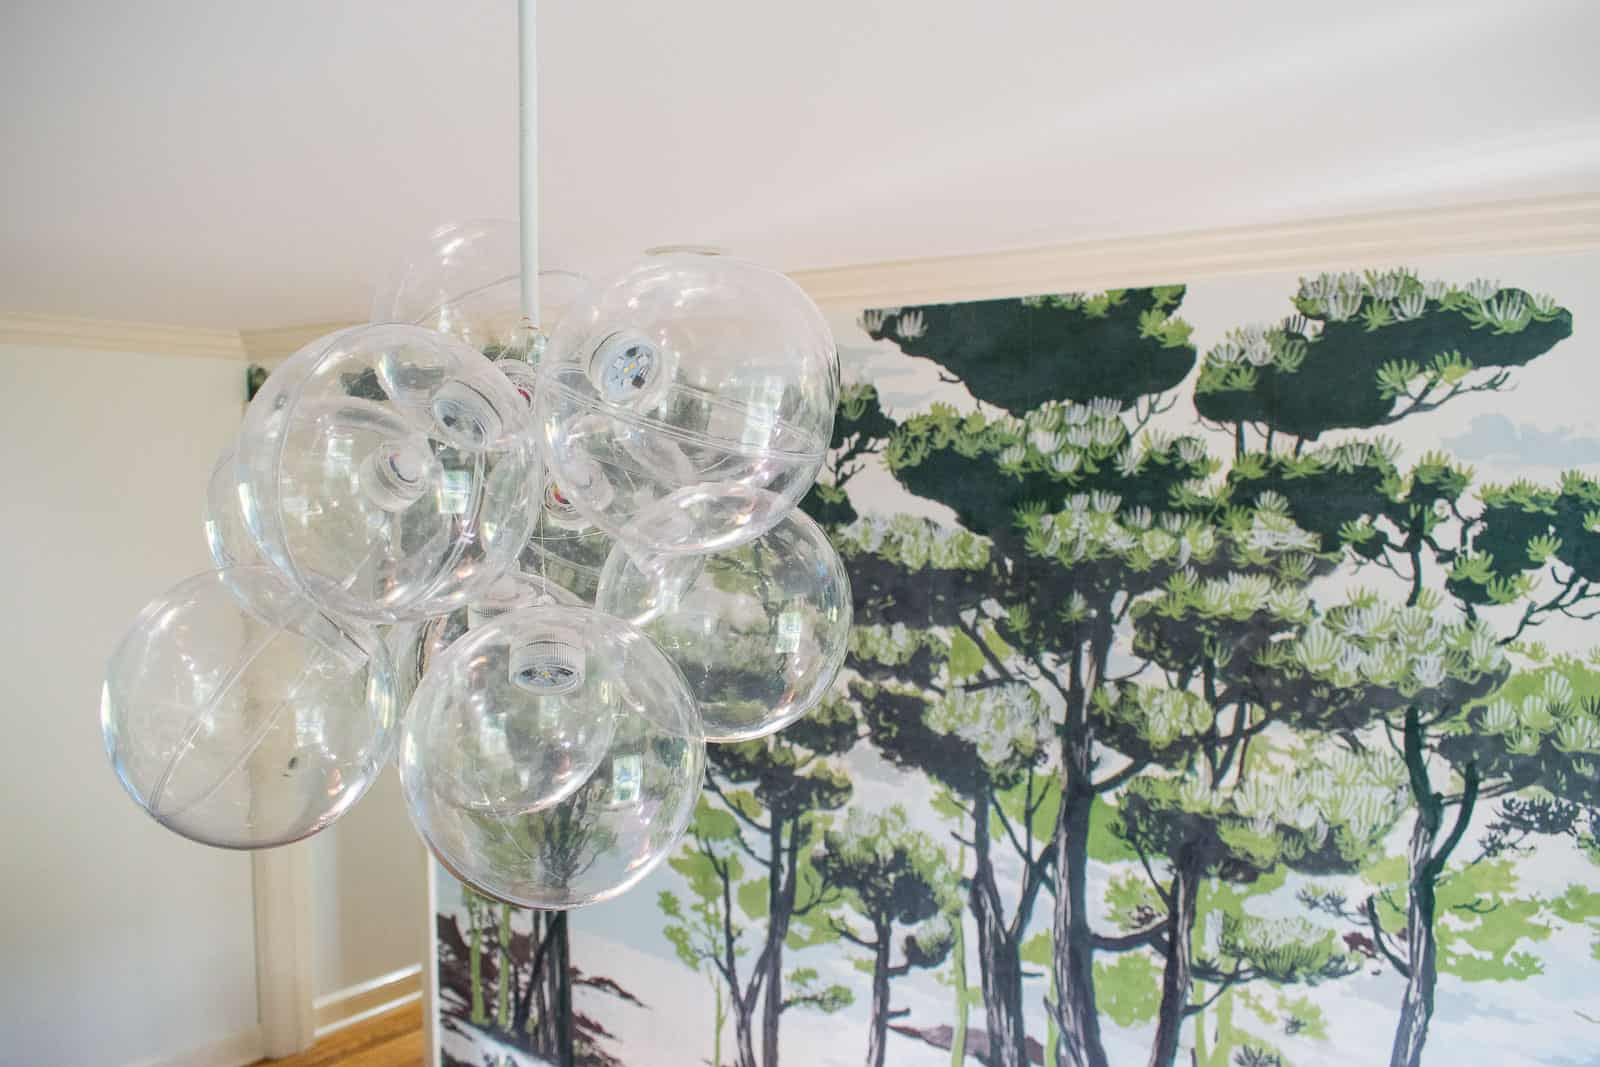 detail of 'bubble' chandelier